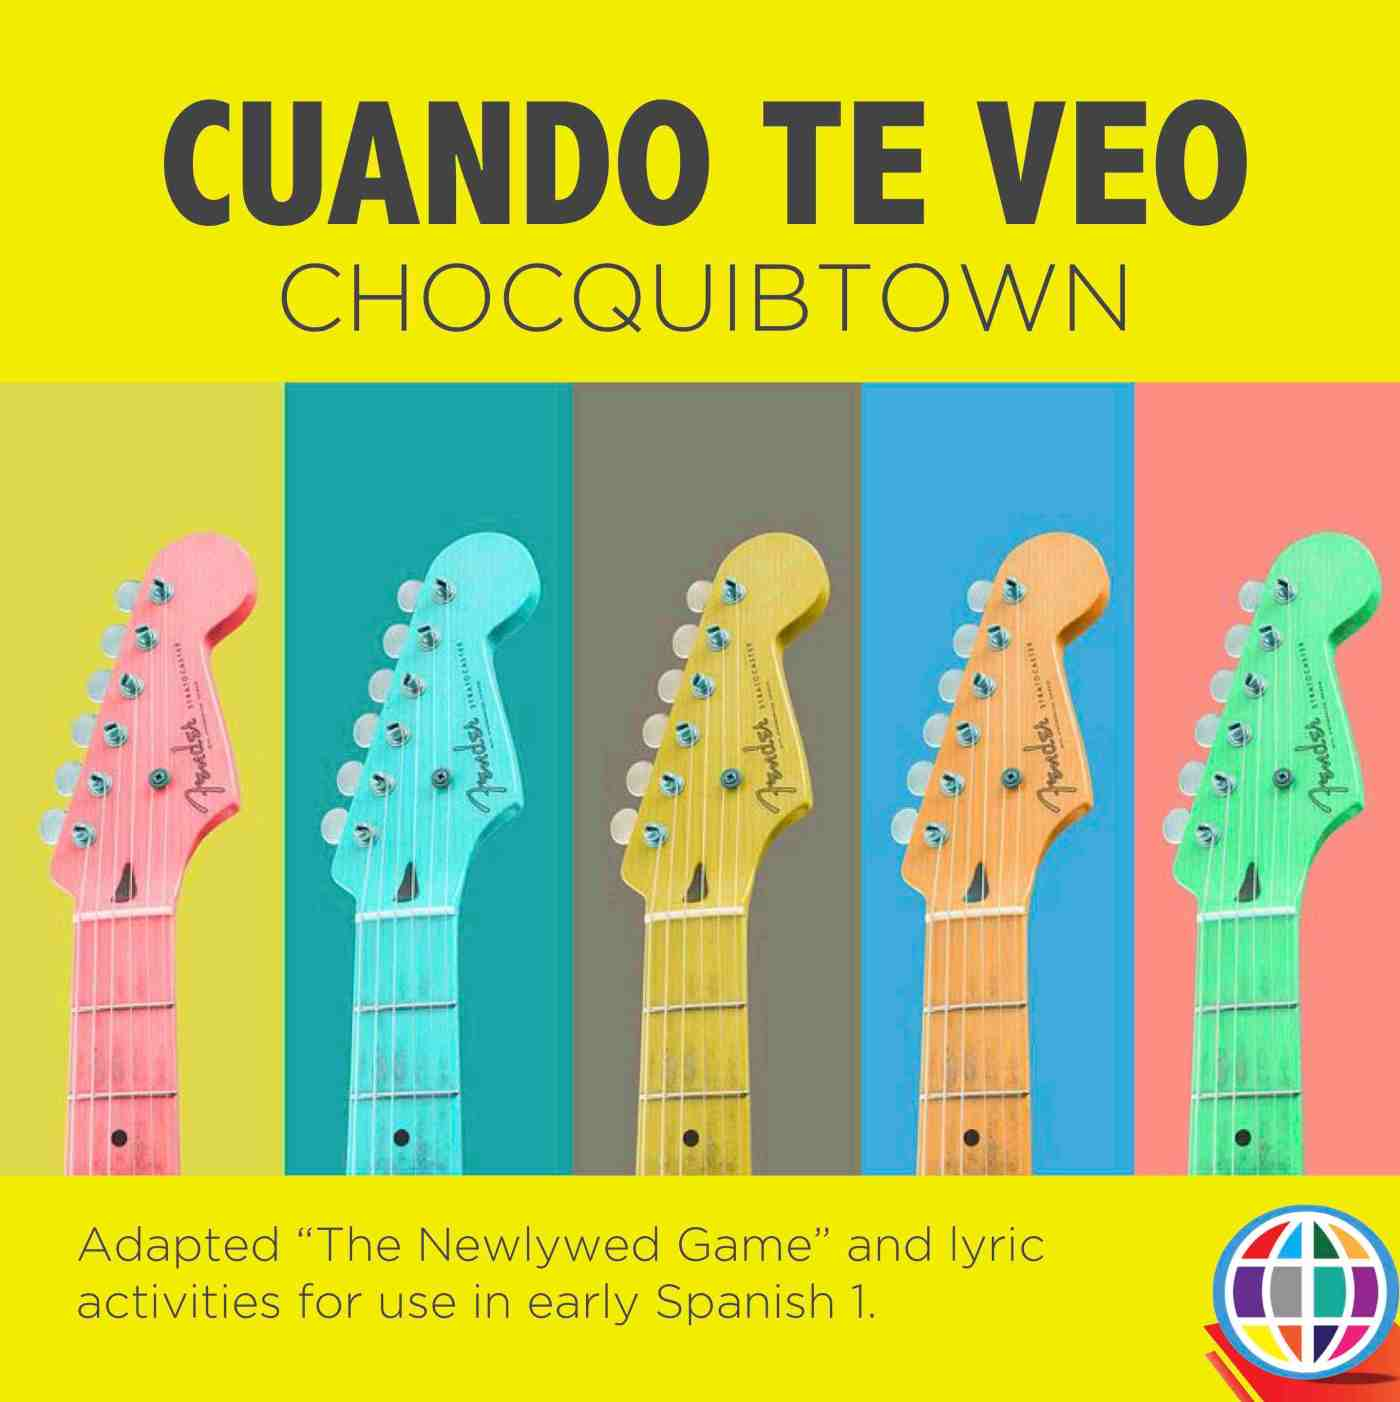 Cuando te veo by ChocQuibTown offers a unique rhythm and a simple hook that students will love